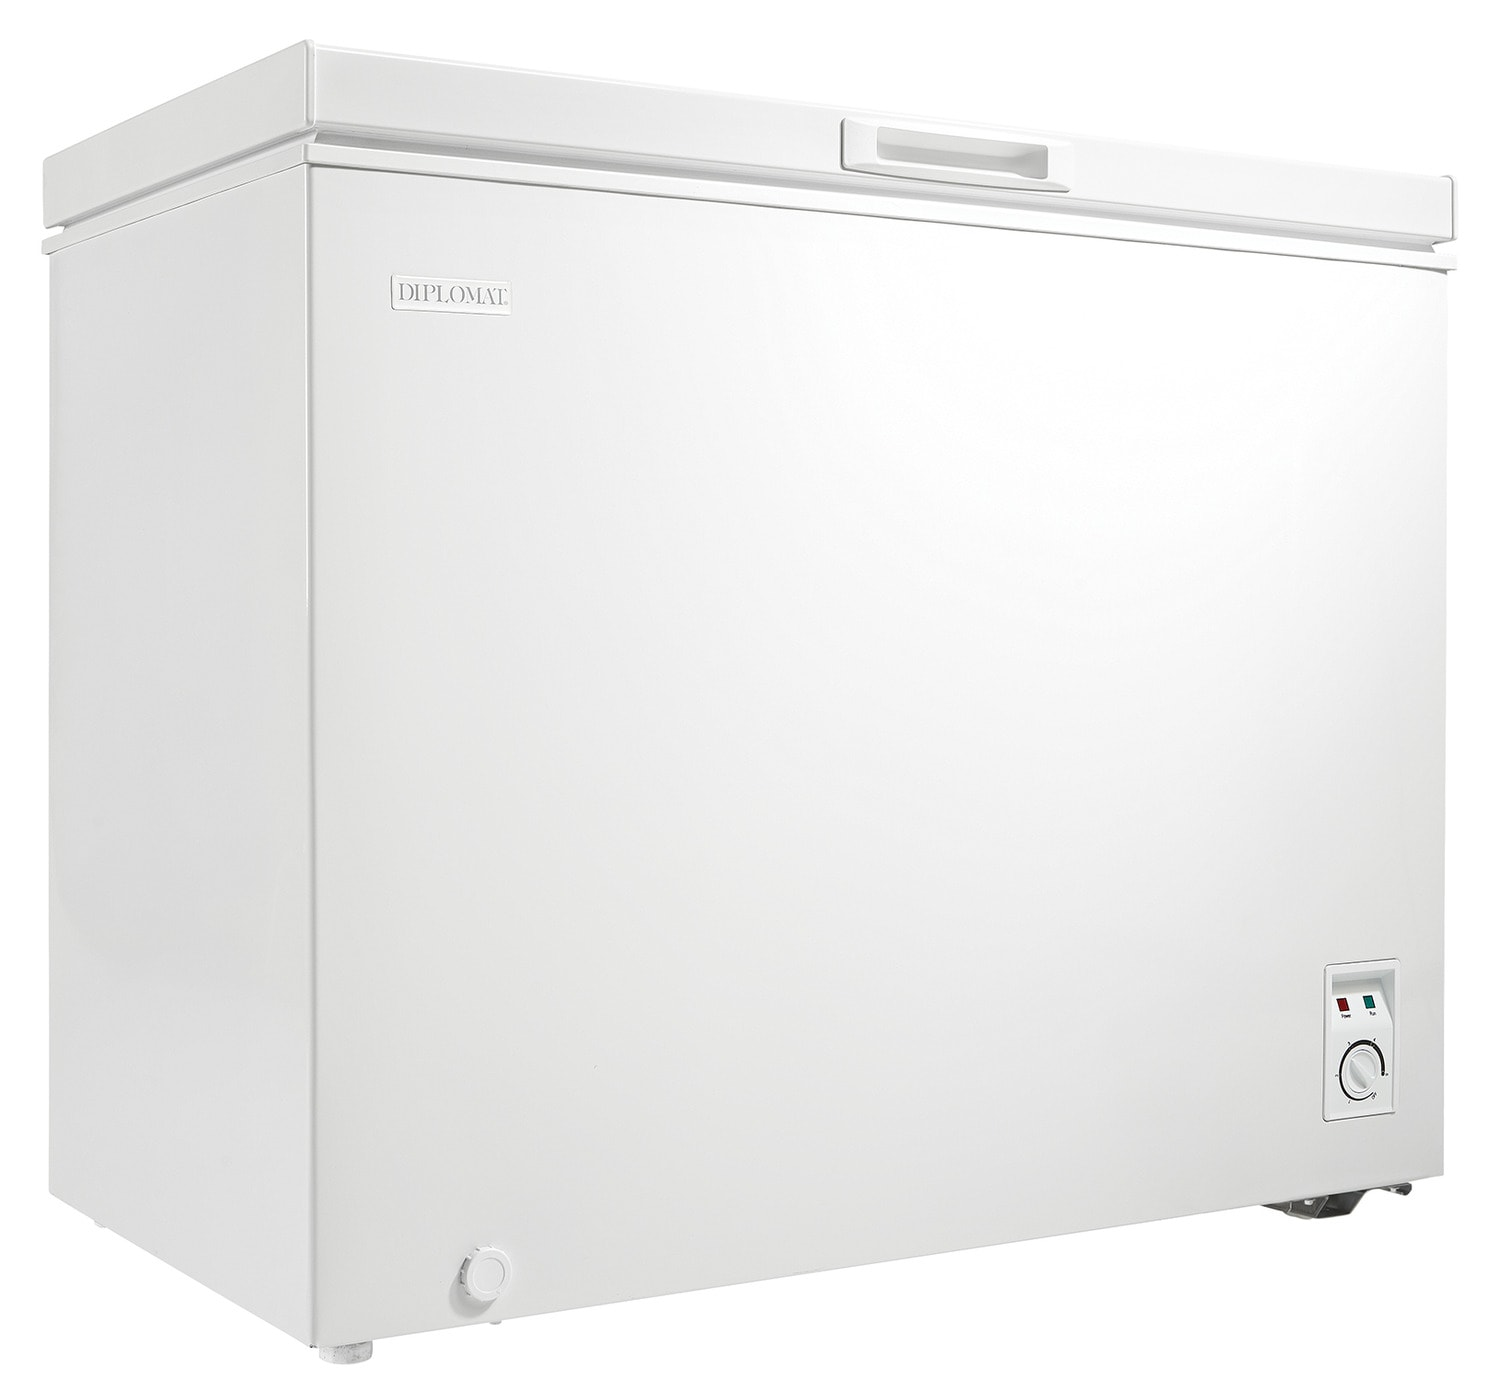 Refrigerators and Freezers - Danby White Chest Freezer (7 Cu. Ft.) - DCFM070C1WM